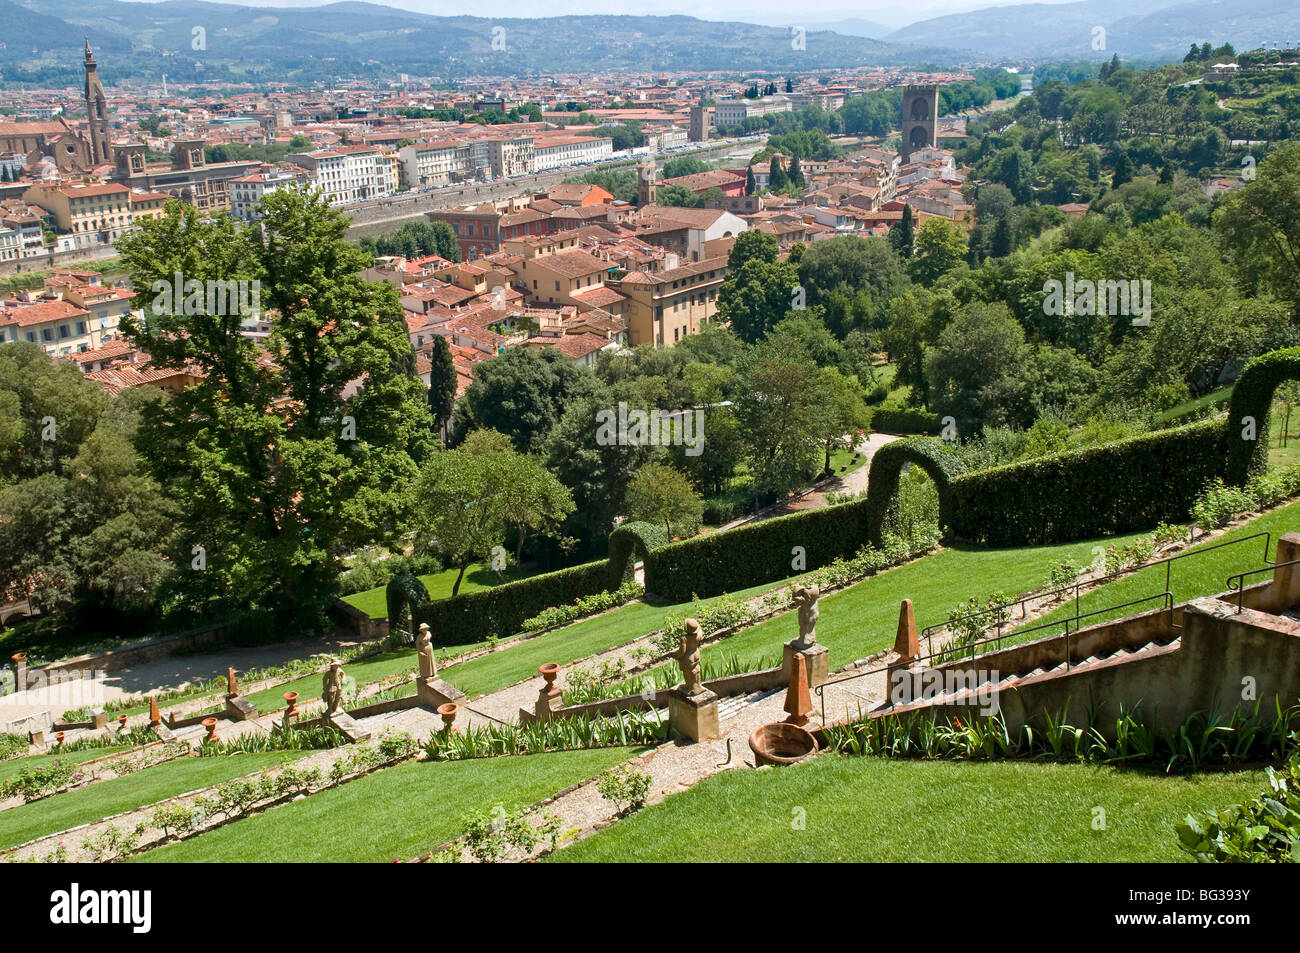 Panoramic view over River Arno and Florence from the Bardini Gardens, Florence (Firenze), Tuscany, Italy, Europe - Stock Image